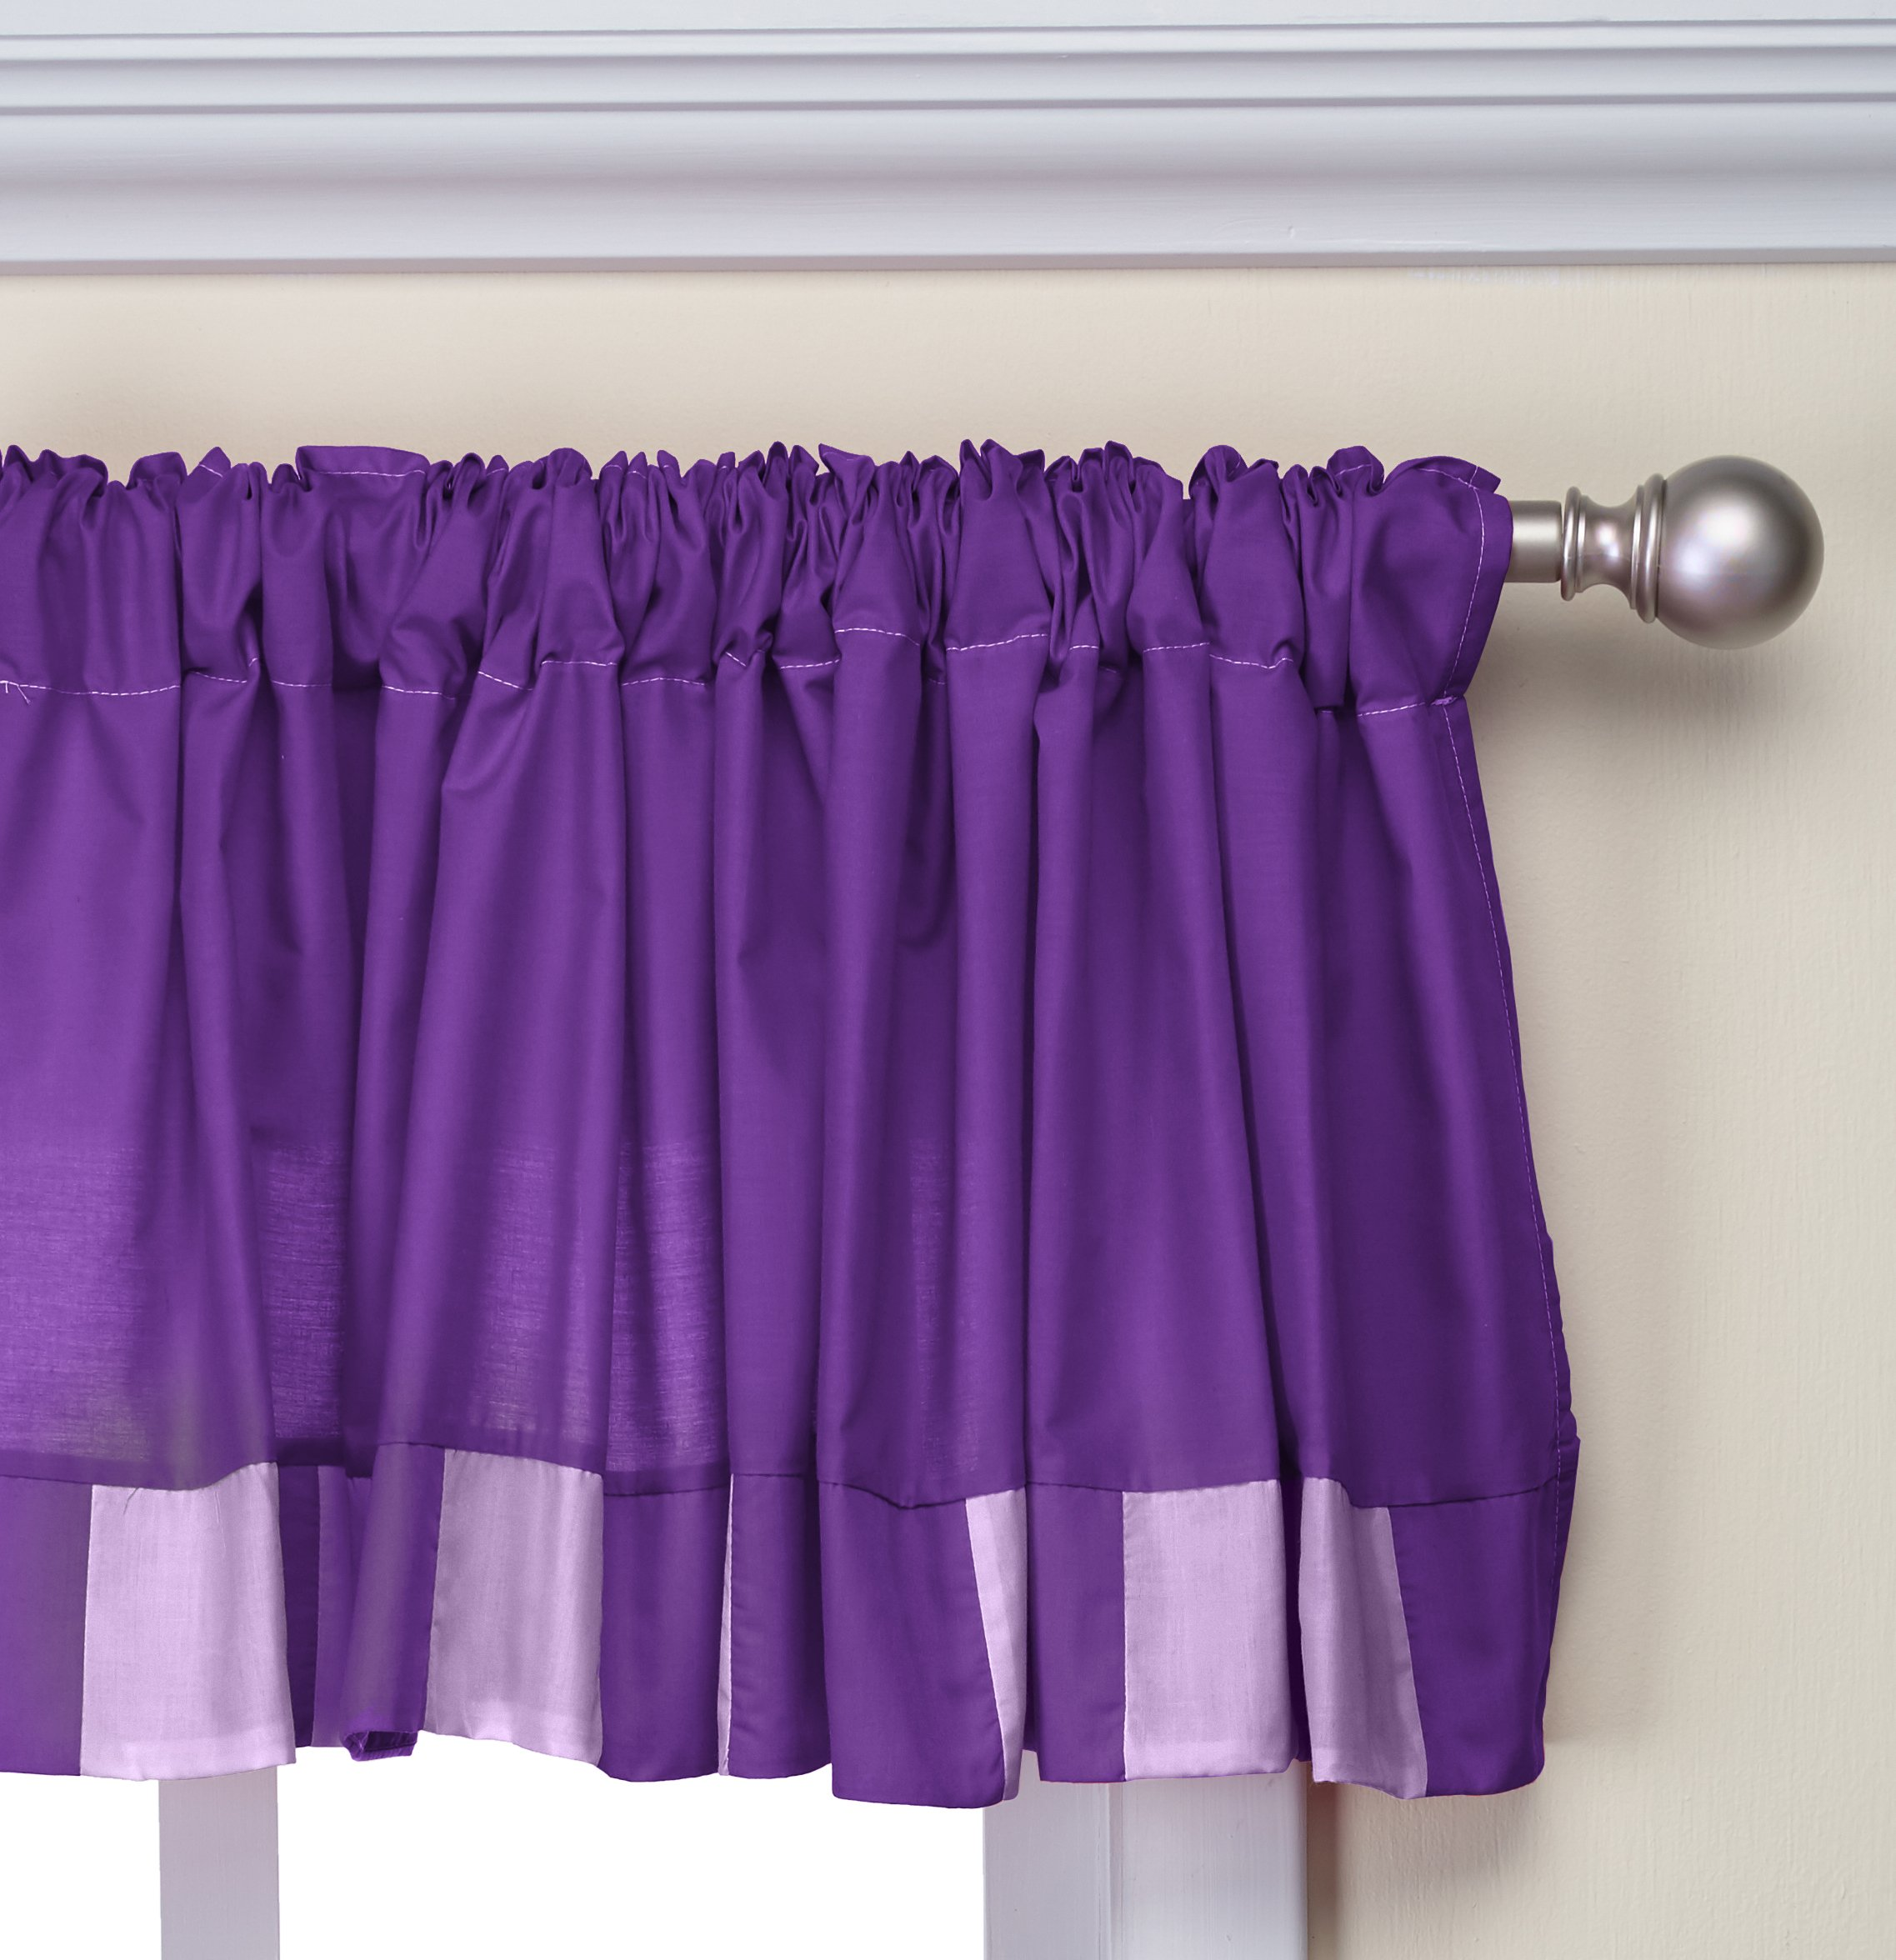 Baby Doll Bedding Patchwork Perfection Window Valance, Plum/Lavender by BabyDoll Bedding